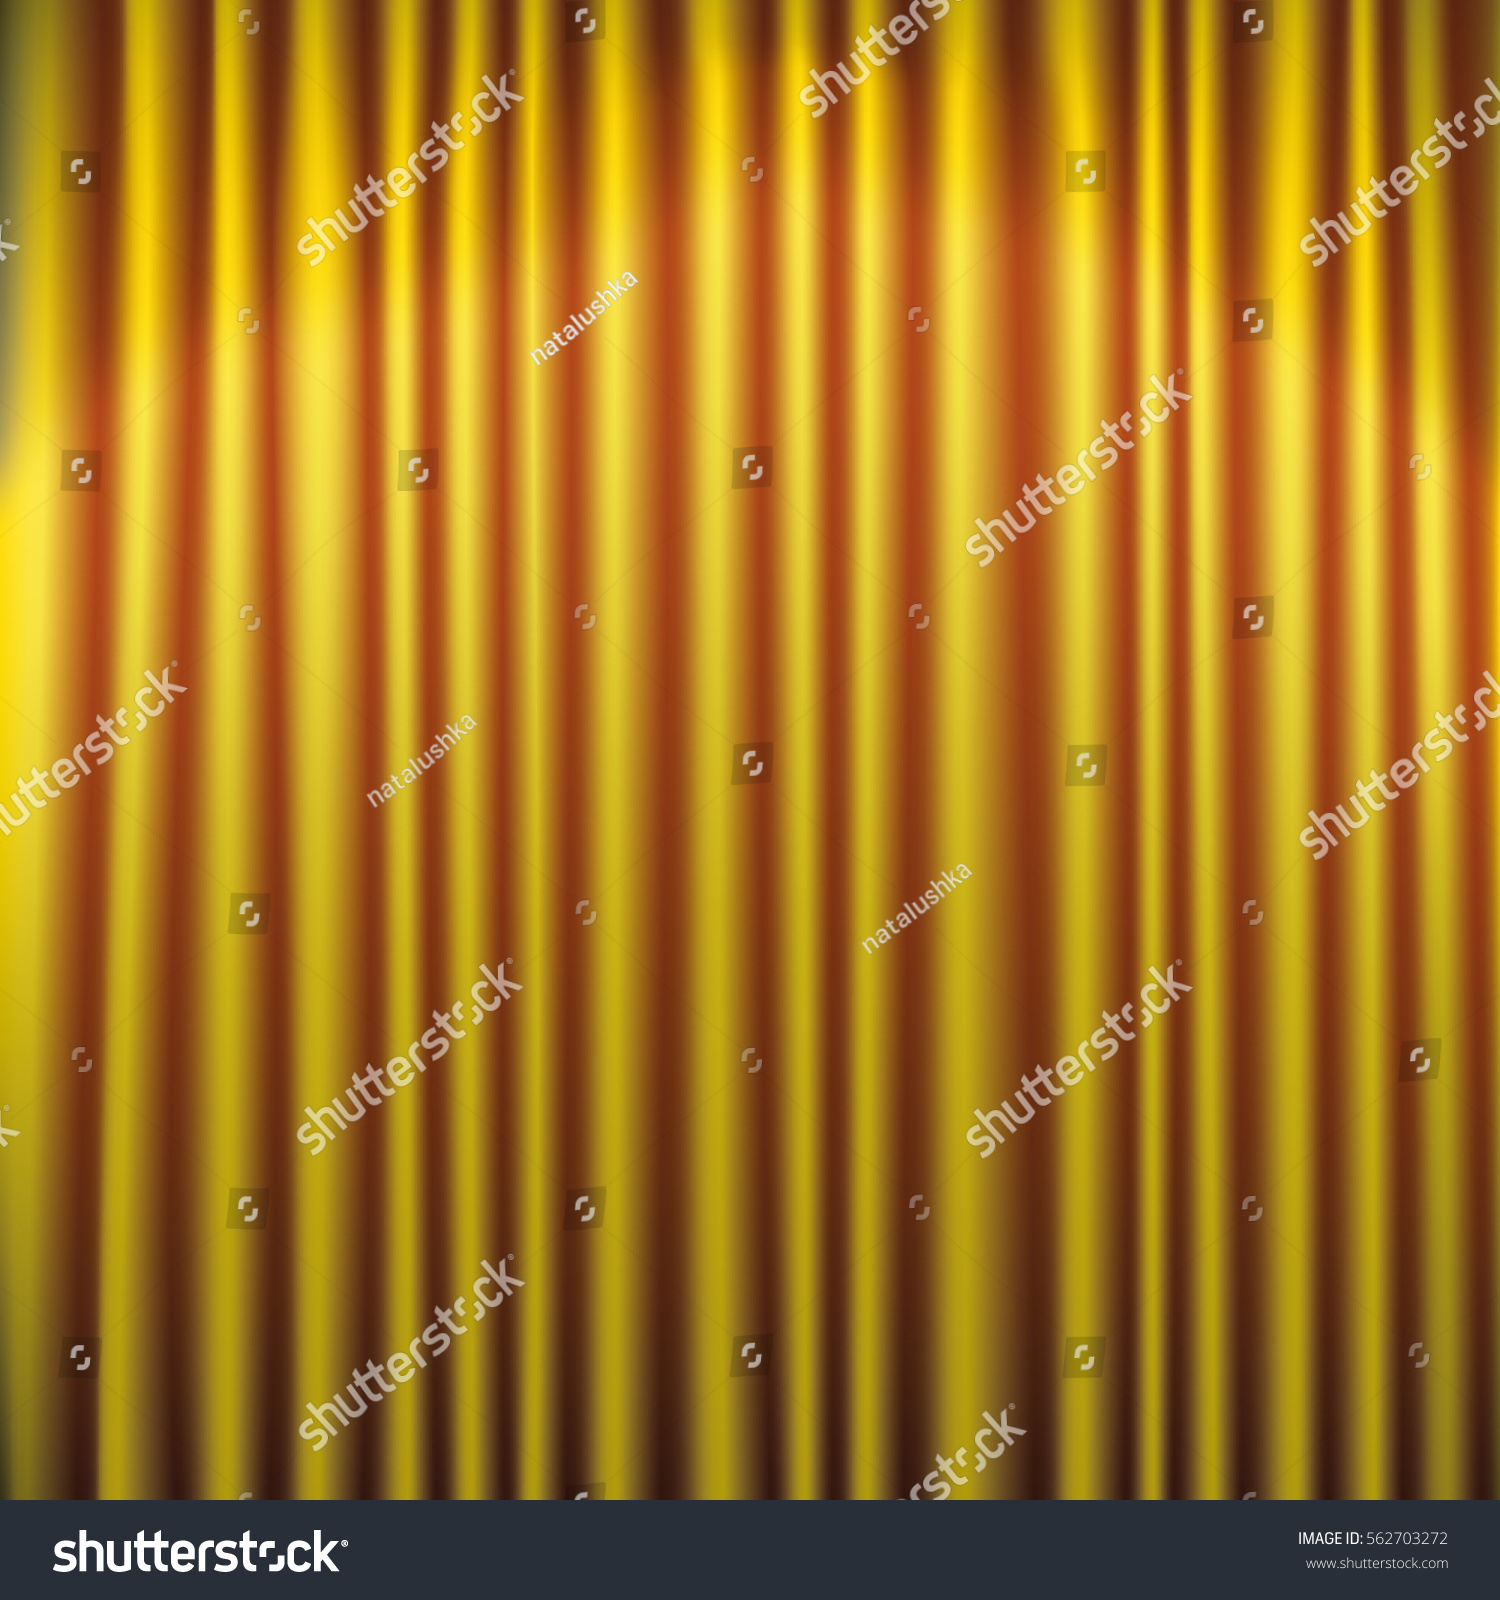 Curtains texture gold - Gold Silky Curtain Texture Background Vector Illustration